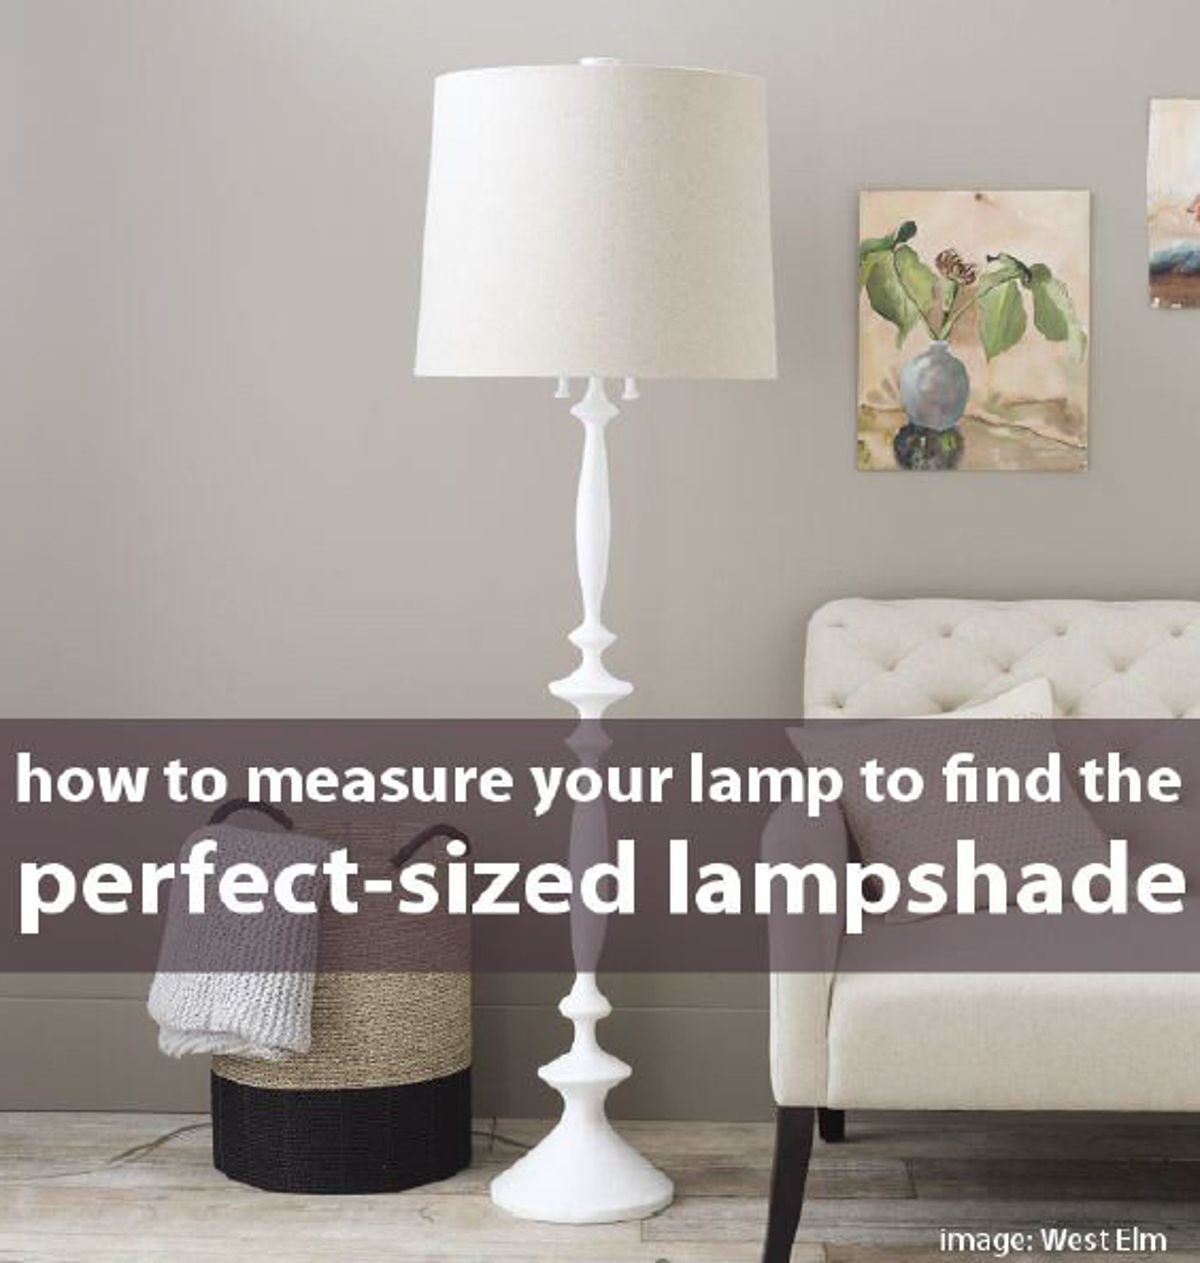 How To Measure Lamp Shade Amusing Measure Your Lamp To Find The Right Sized Lampshade  Lamp Bases Inspiration